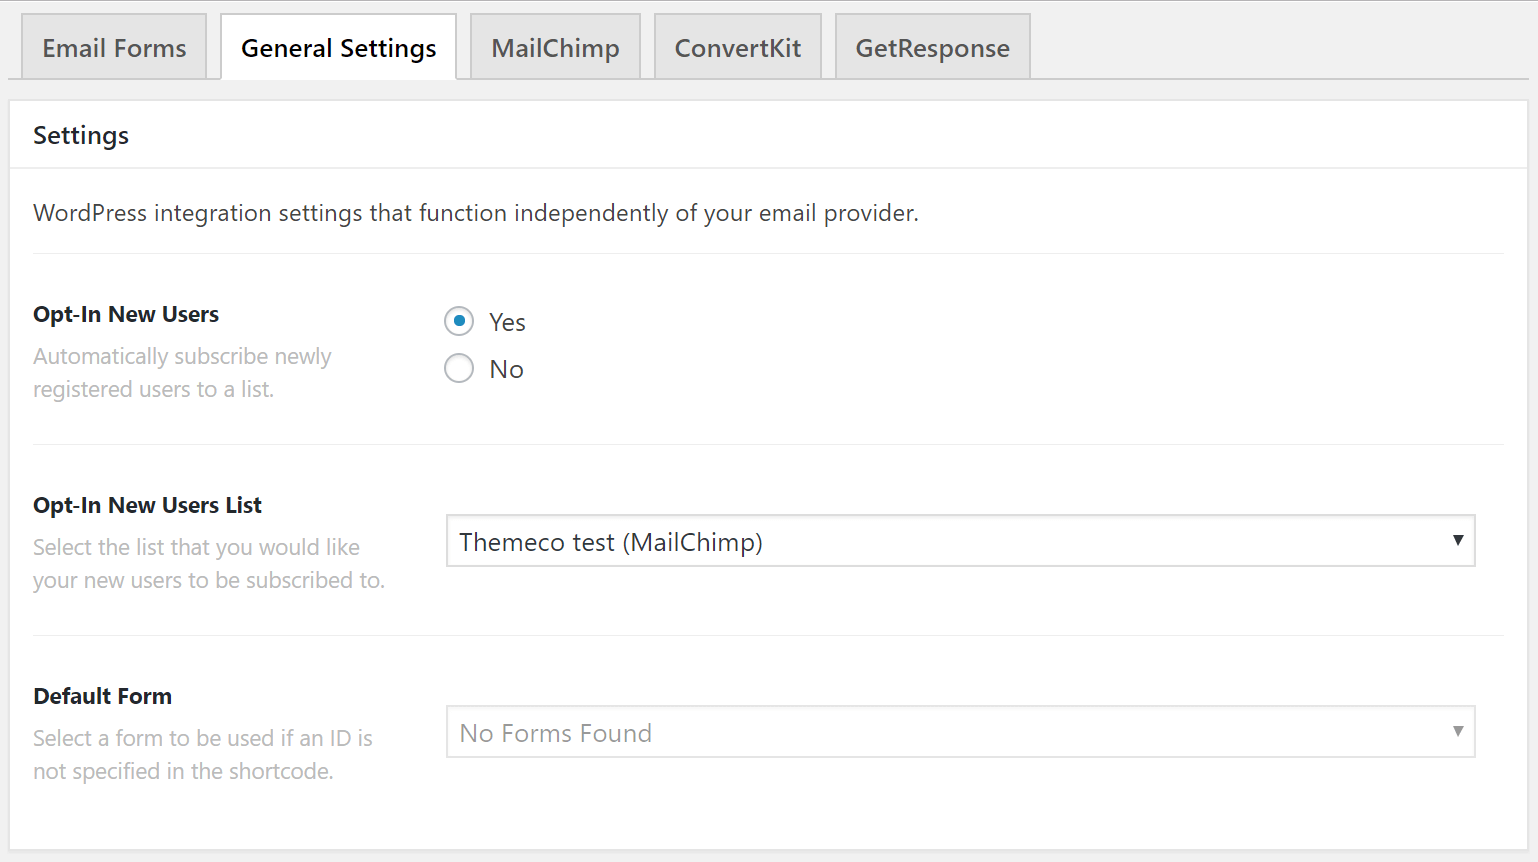 Email Forms General Settings